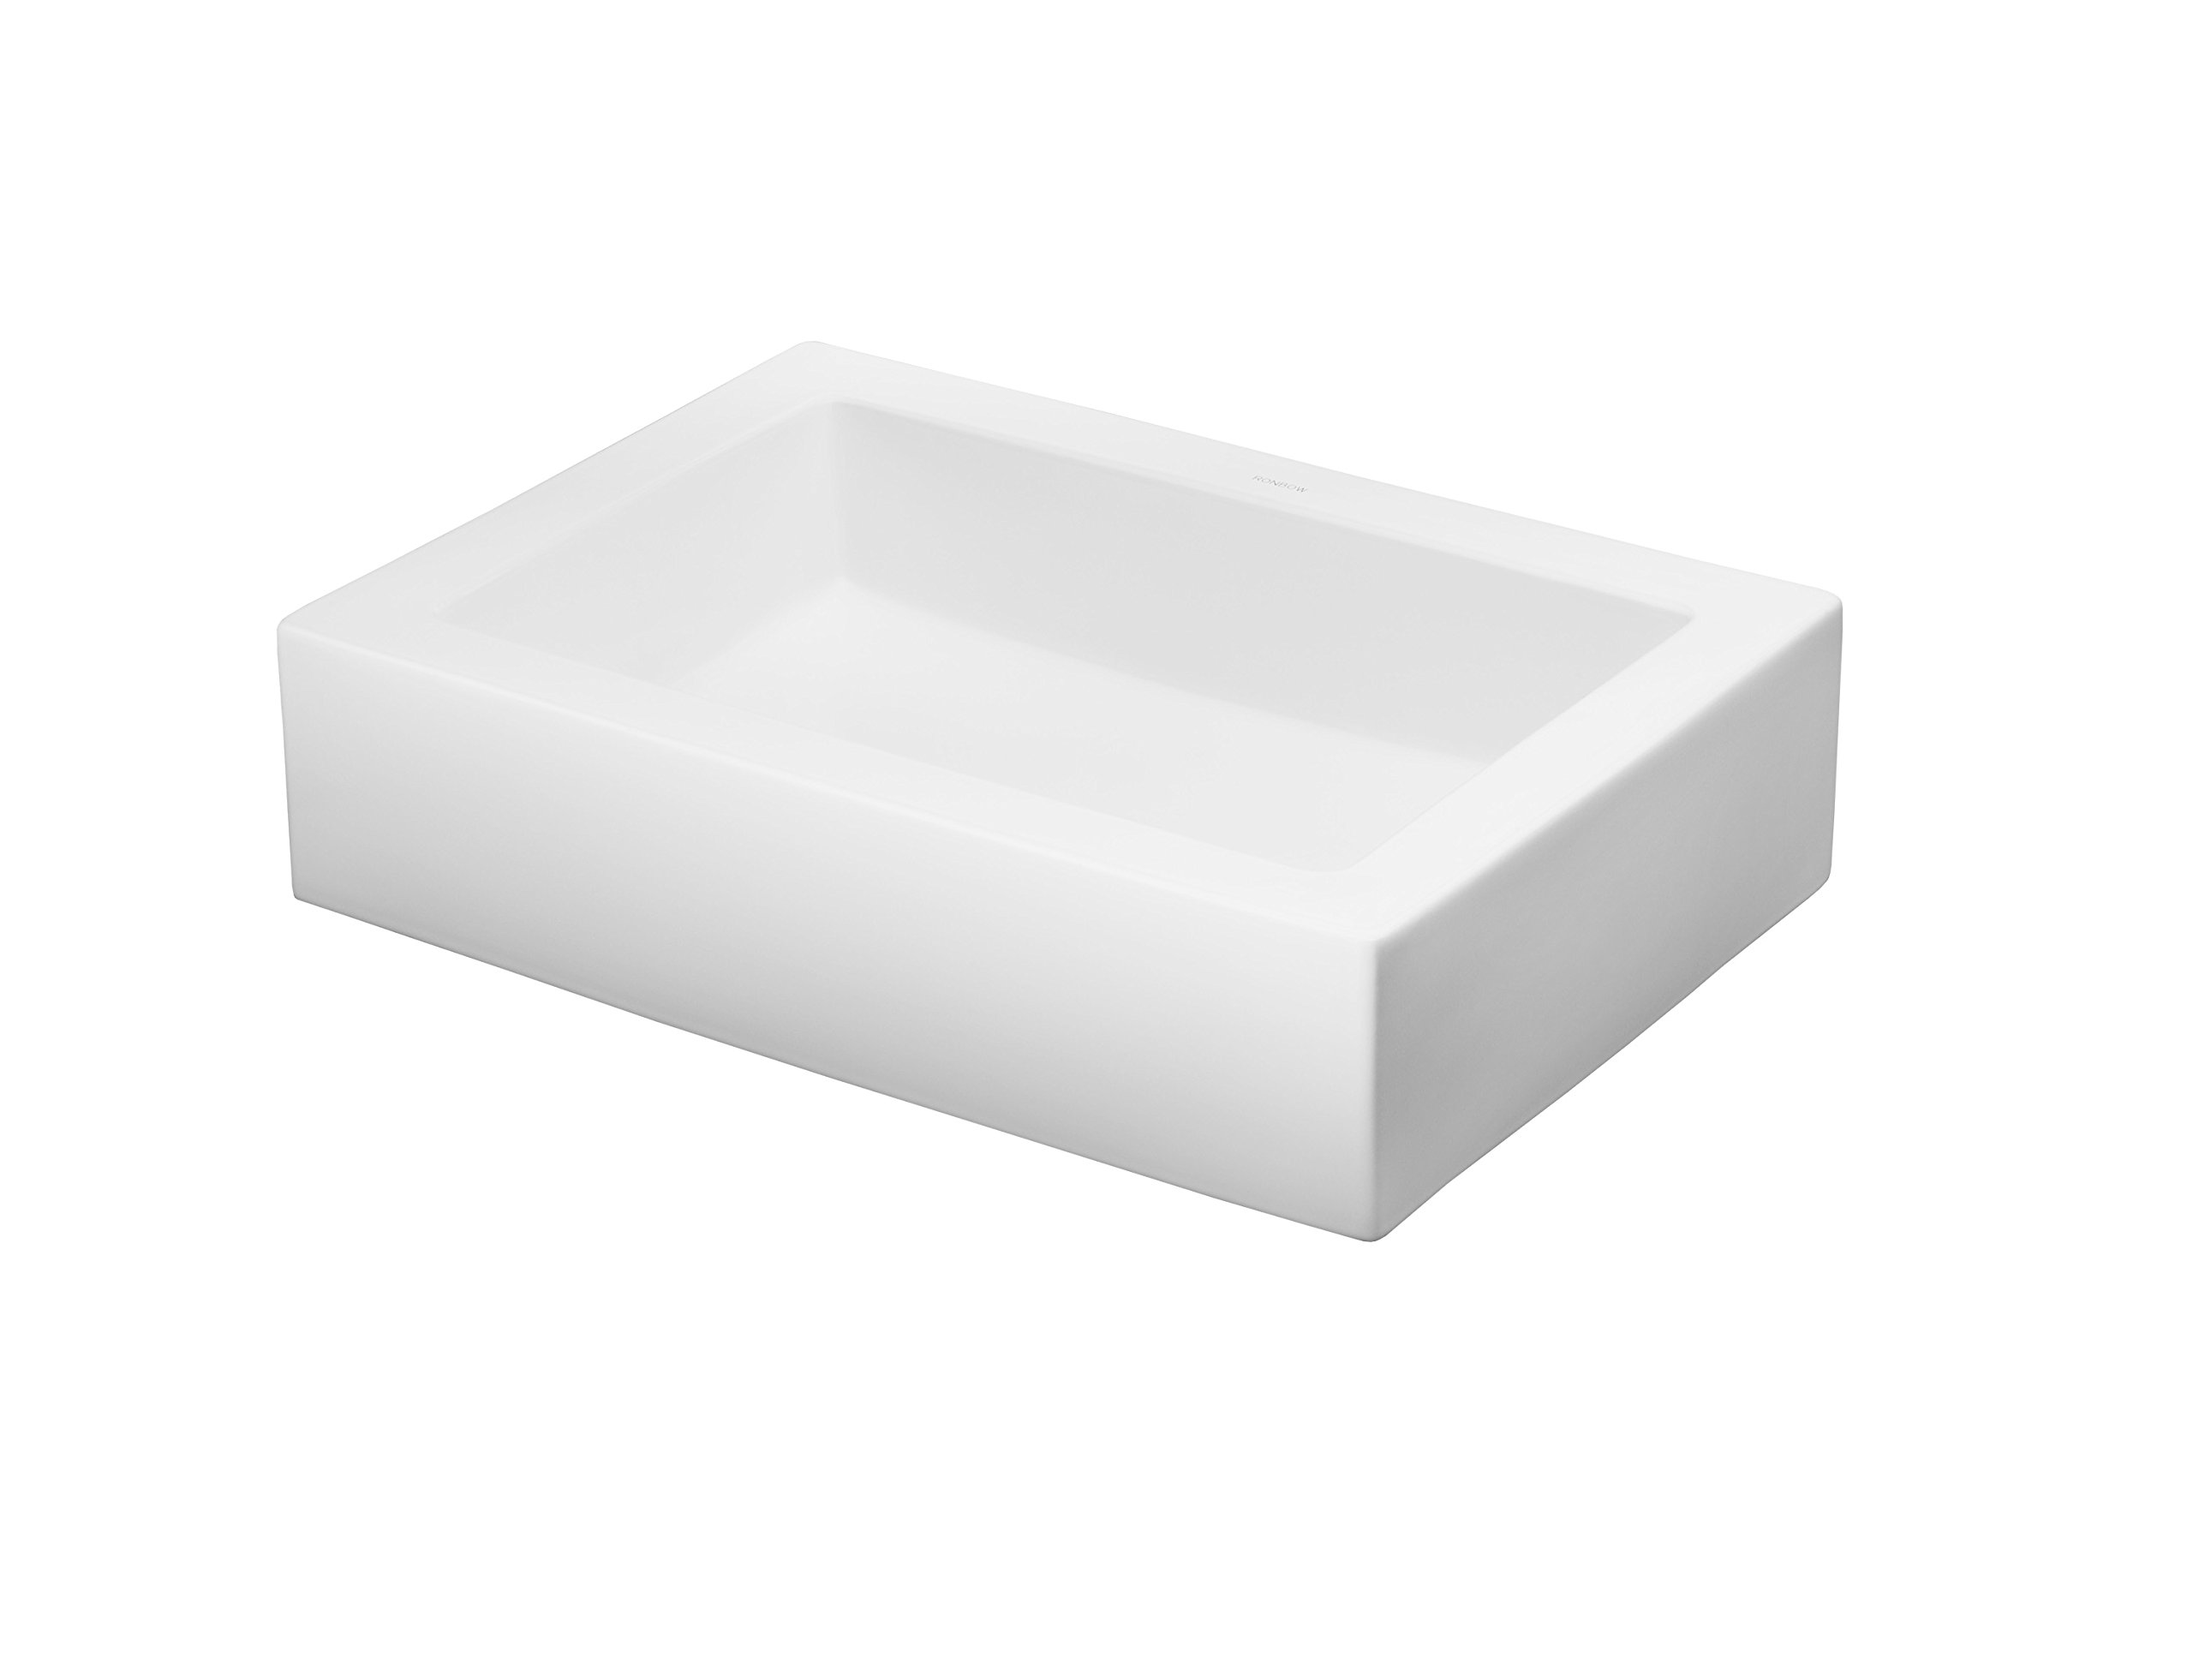 RONBOW Format 23 Inch Above Counter Ceramic Bathroom Vanity Vessel Sink in White 200036-WH